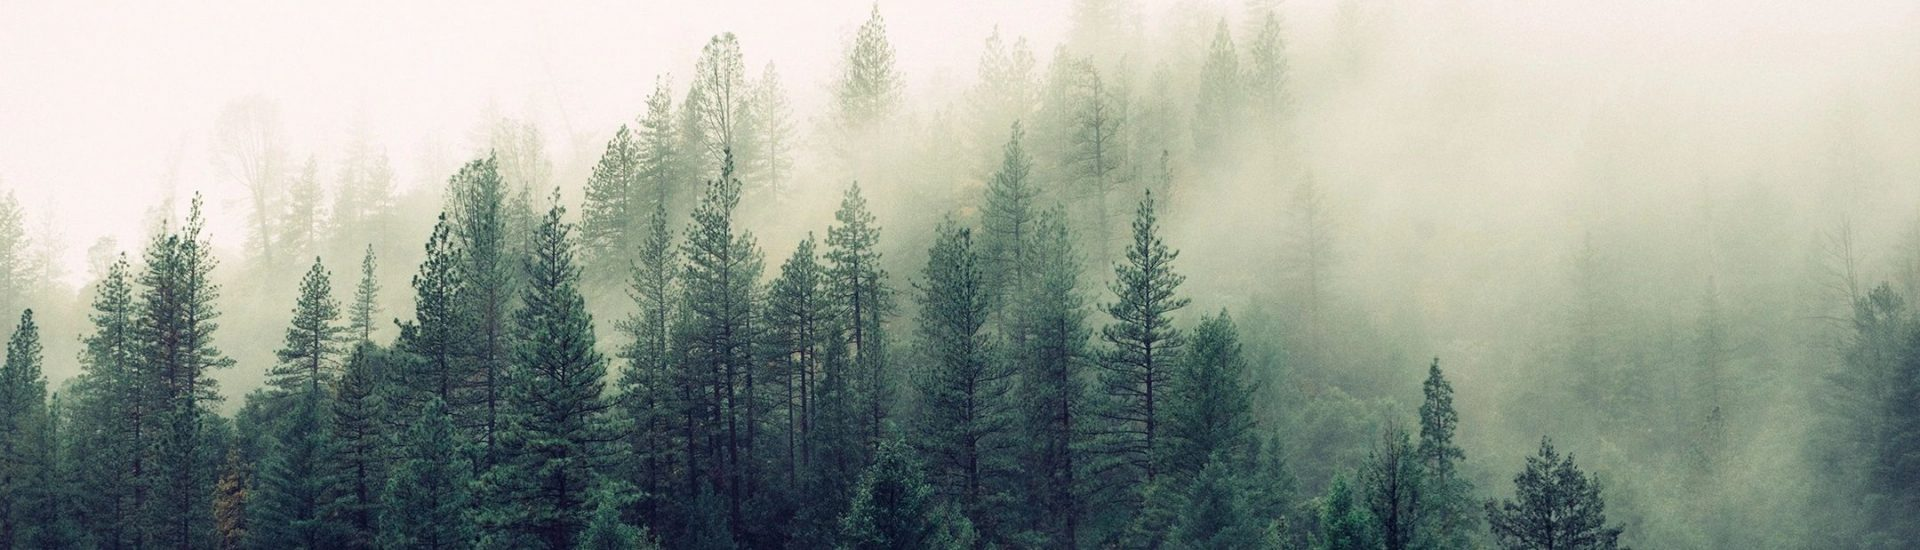 Trees in fog for blog by DC widow Marjorie Brimley